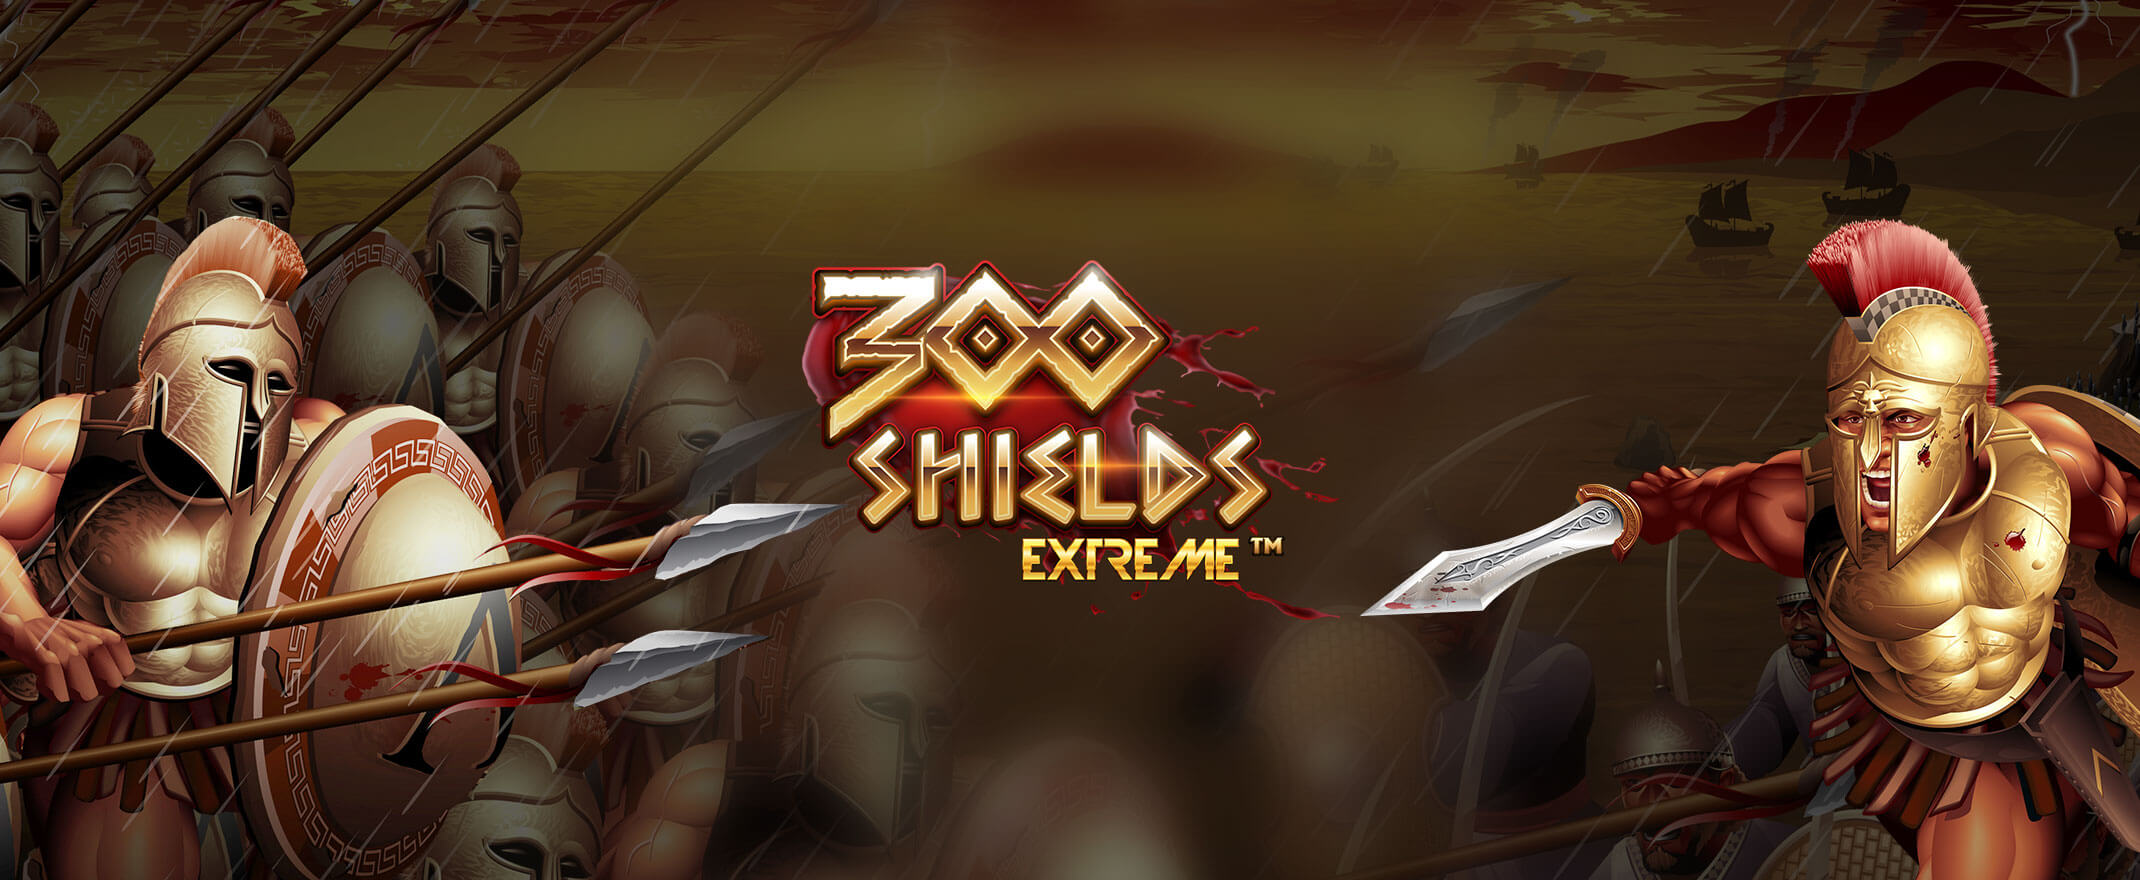 300 Shields Extreme now live